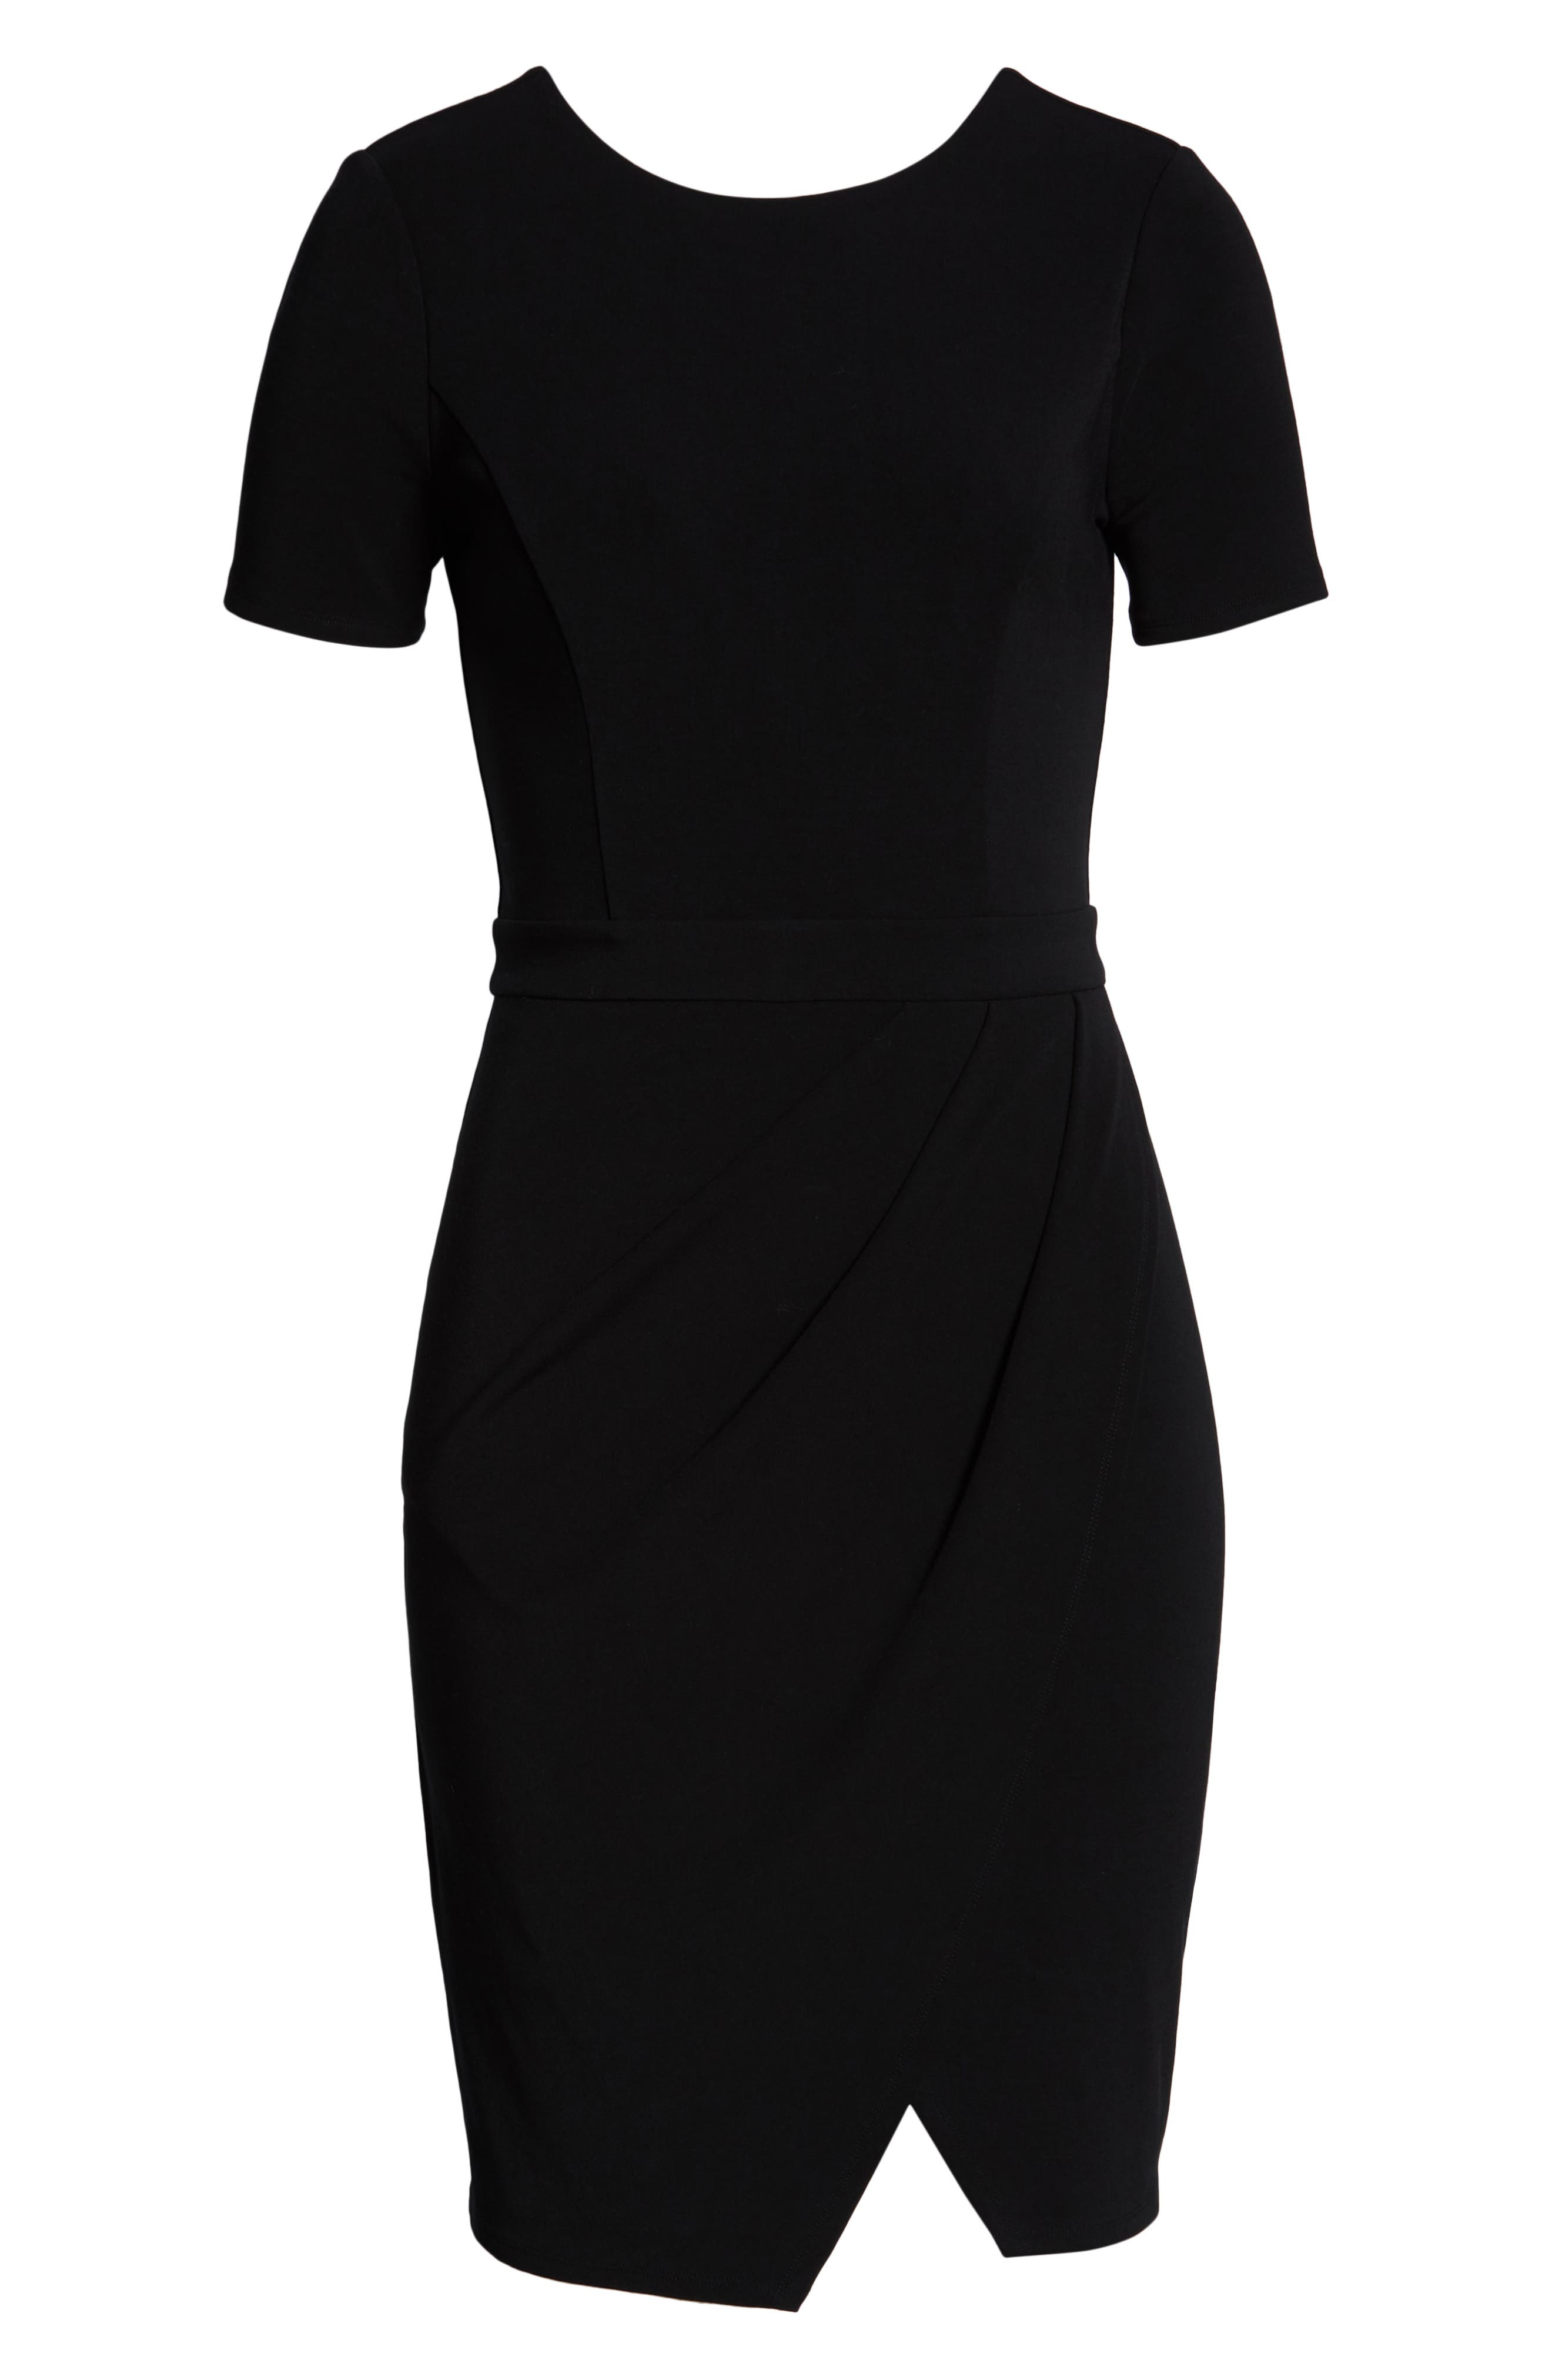 ALI & JAY, Pleated Jersey Dress, Alternate thumbnail 7, color, BLACK